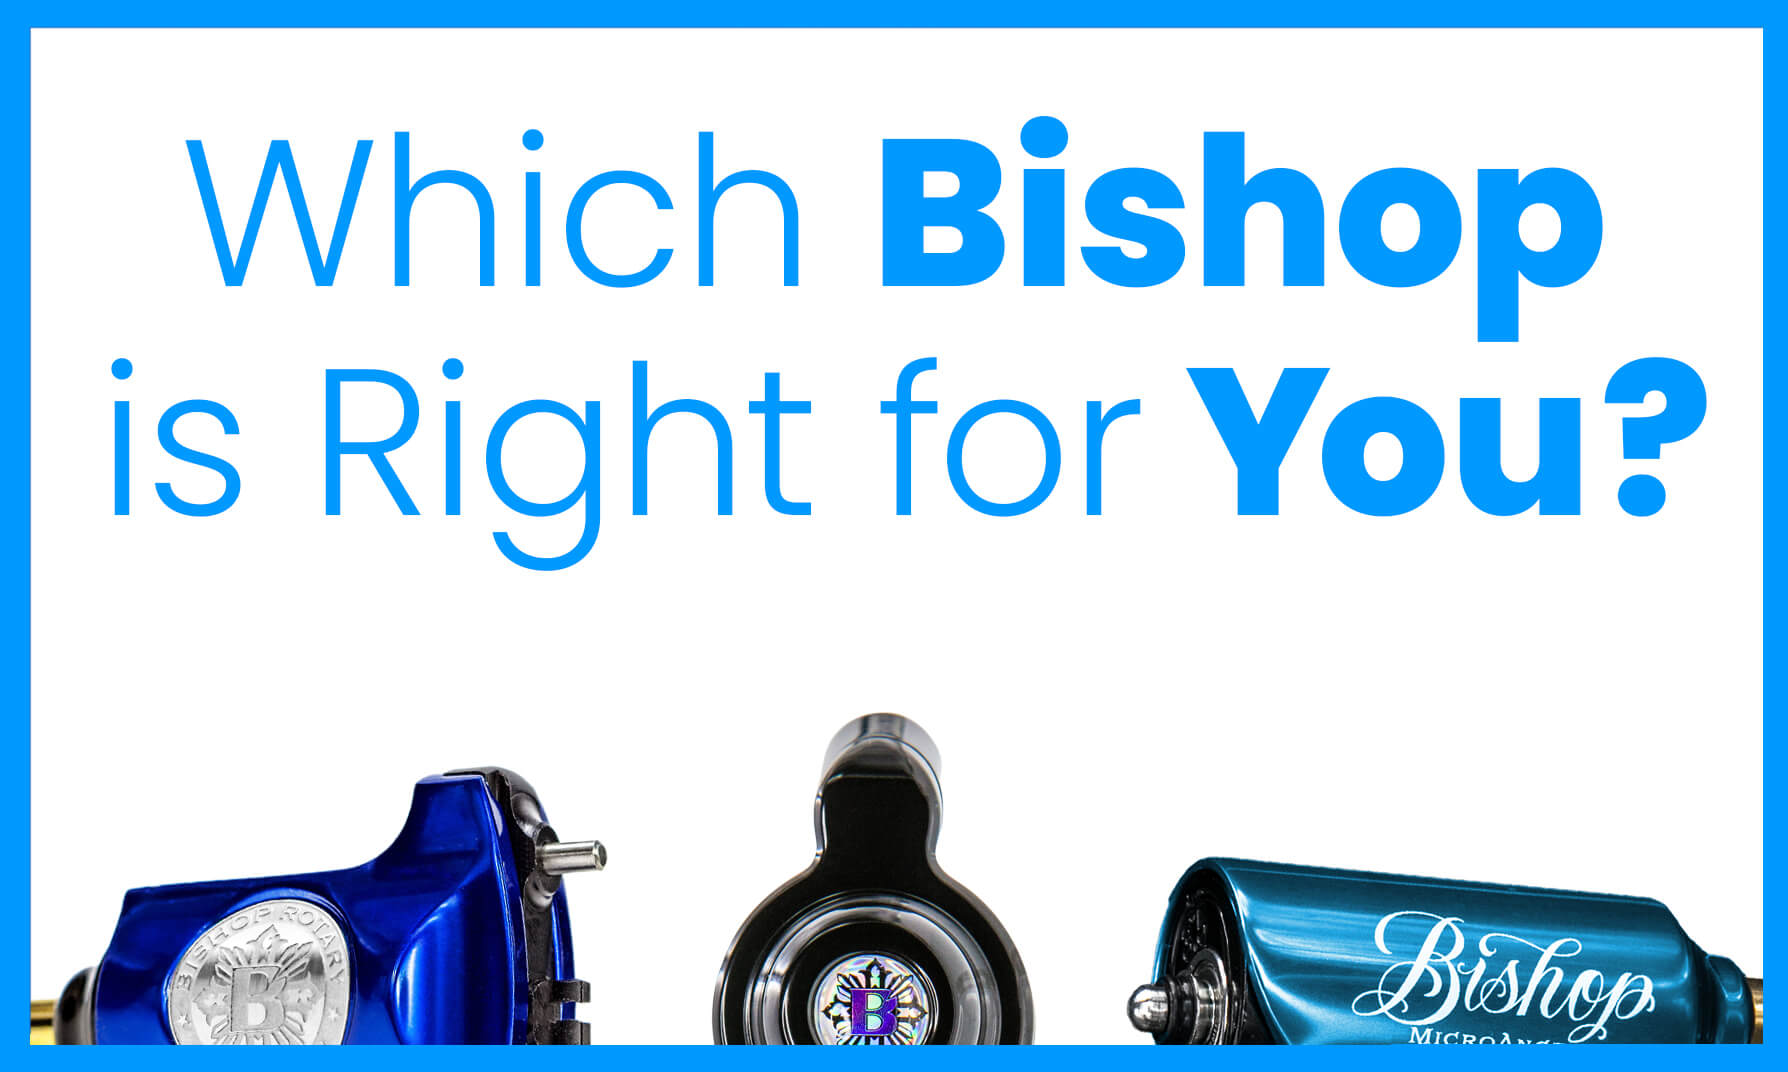 TATTOO MACHINES - Bishop Tattoo Supply